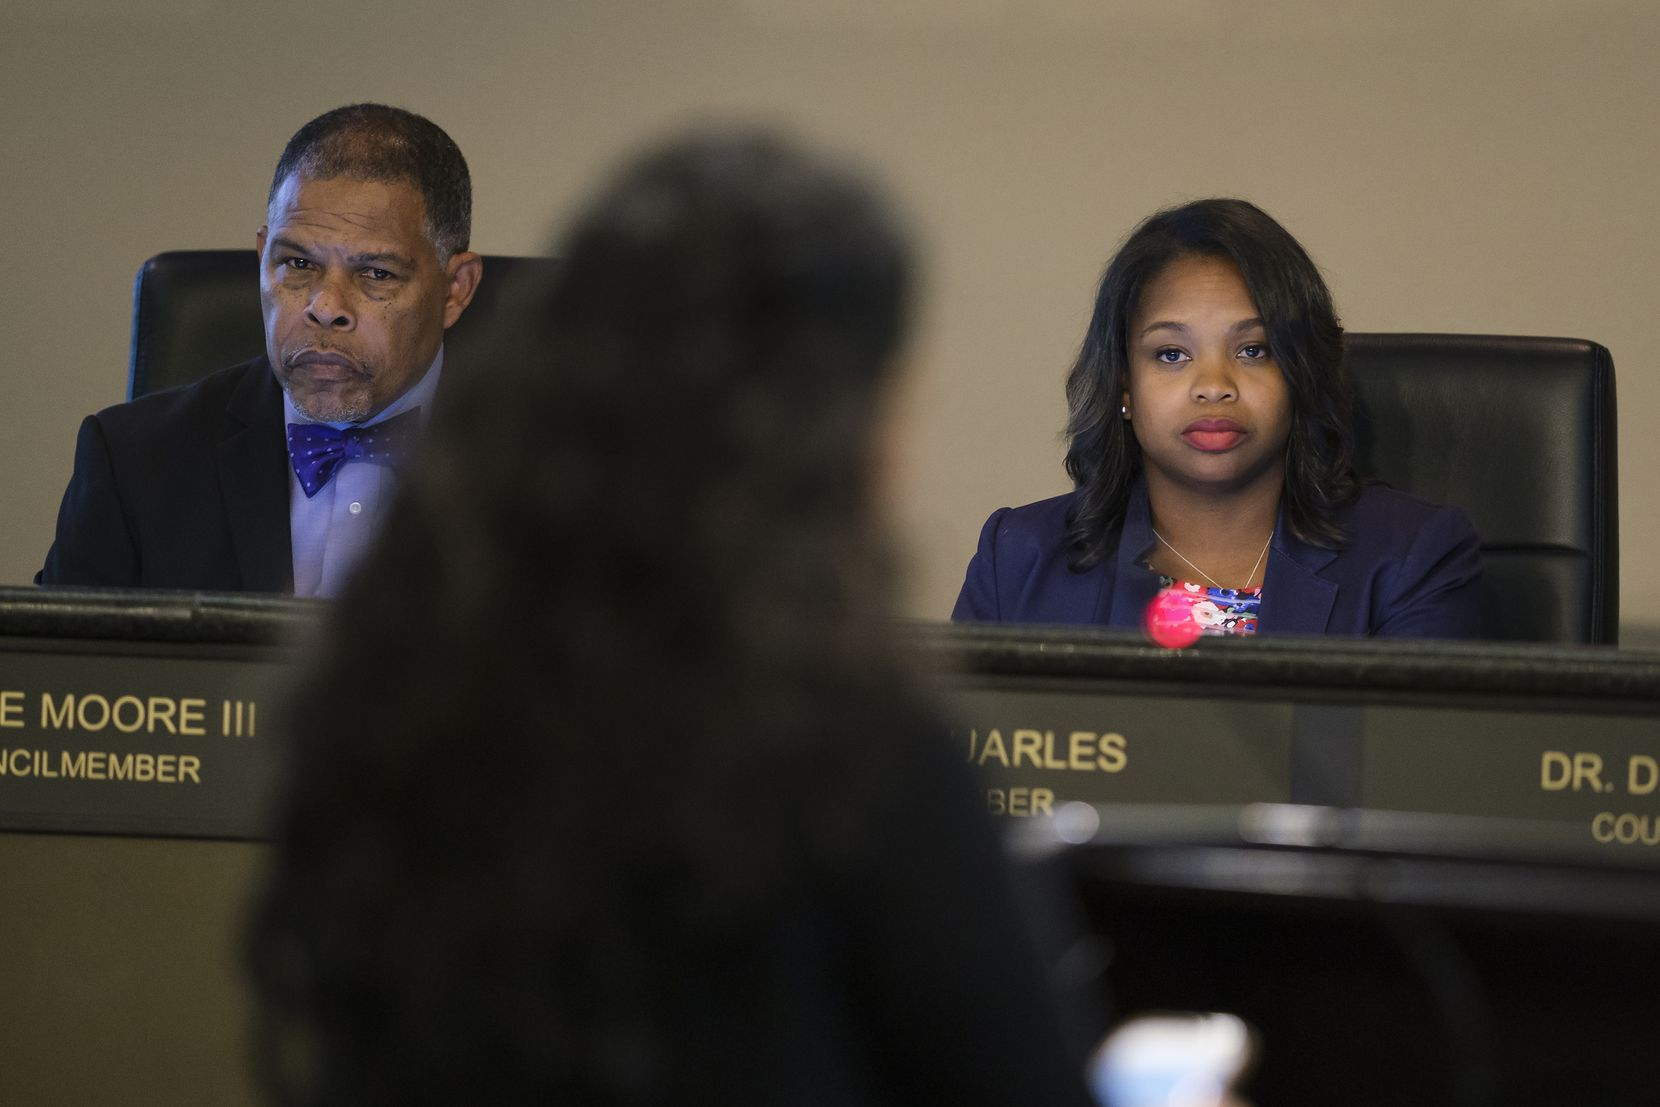 Council member Candice Quarles (right) and Mayor Pro Tem Kenzie Moore III listen to Dorothy Ann Dauenhauer call for transparency during public comment during a meeting of the DeSoto City Council on Tuesday, Aug. 20, 2019, in DeSoto, Texas. (Smiley N. Pool/The Dallas Morning News)